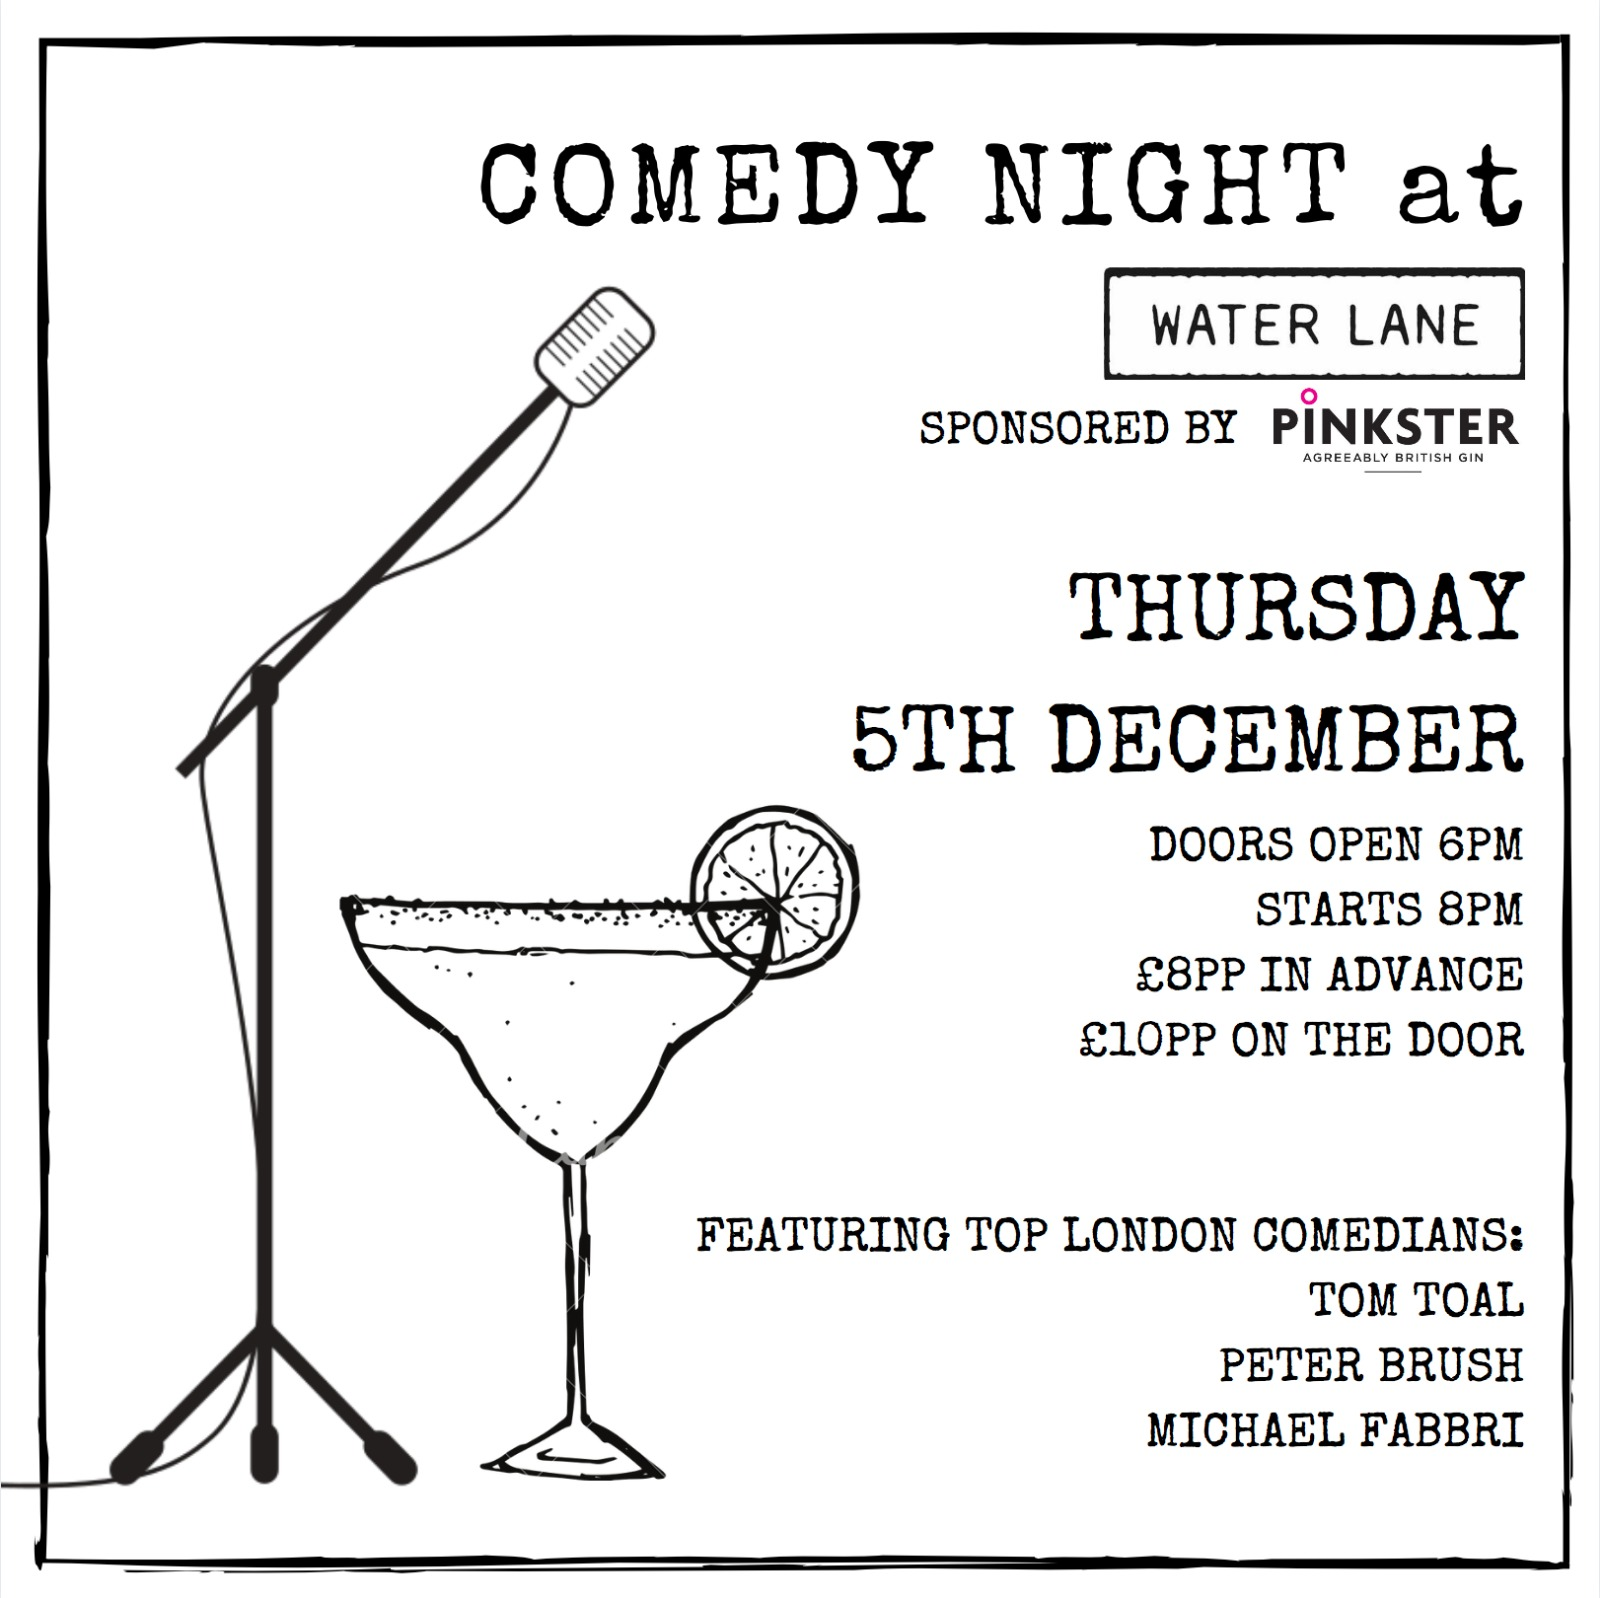 Water Lane Comedy Night